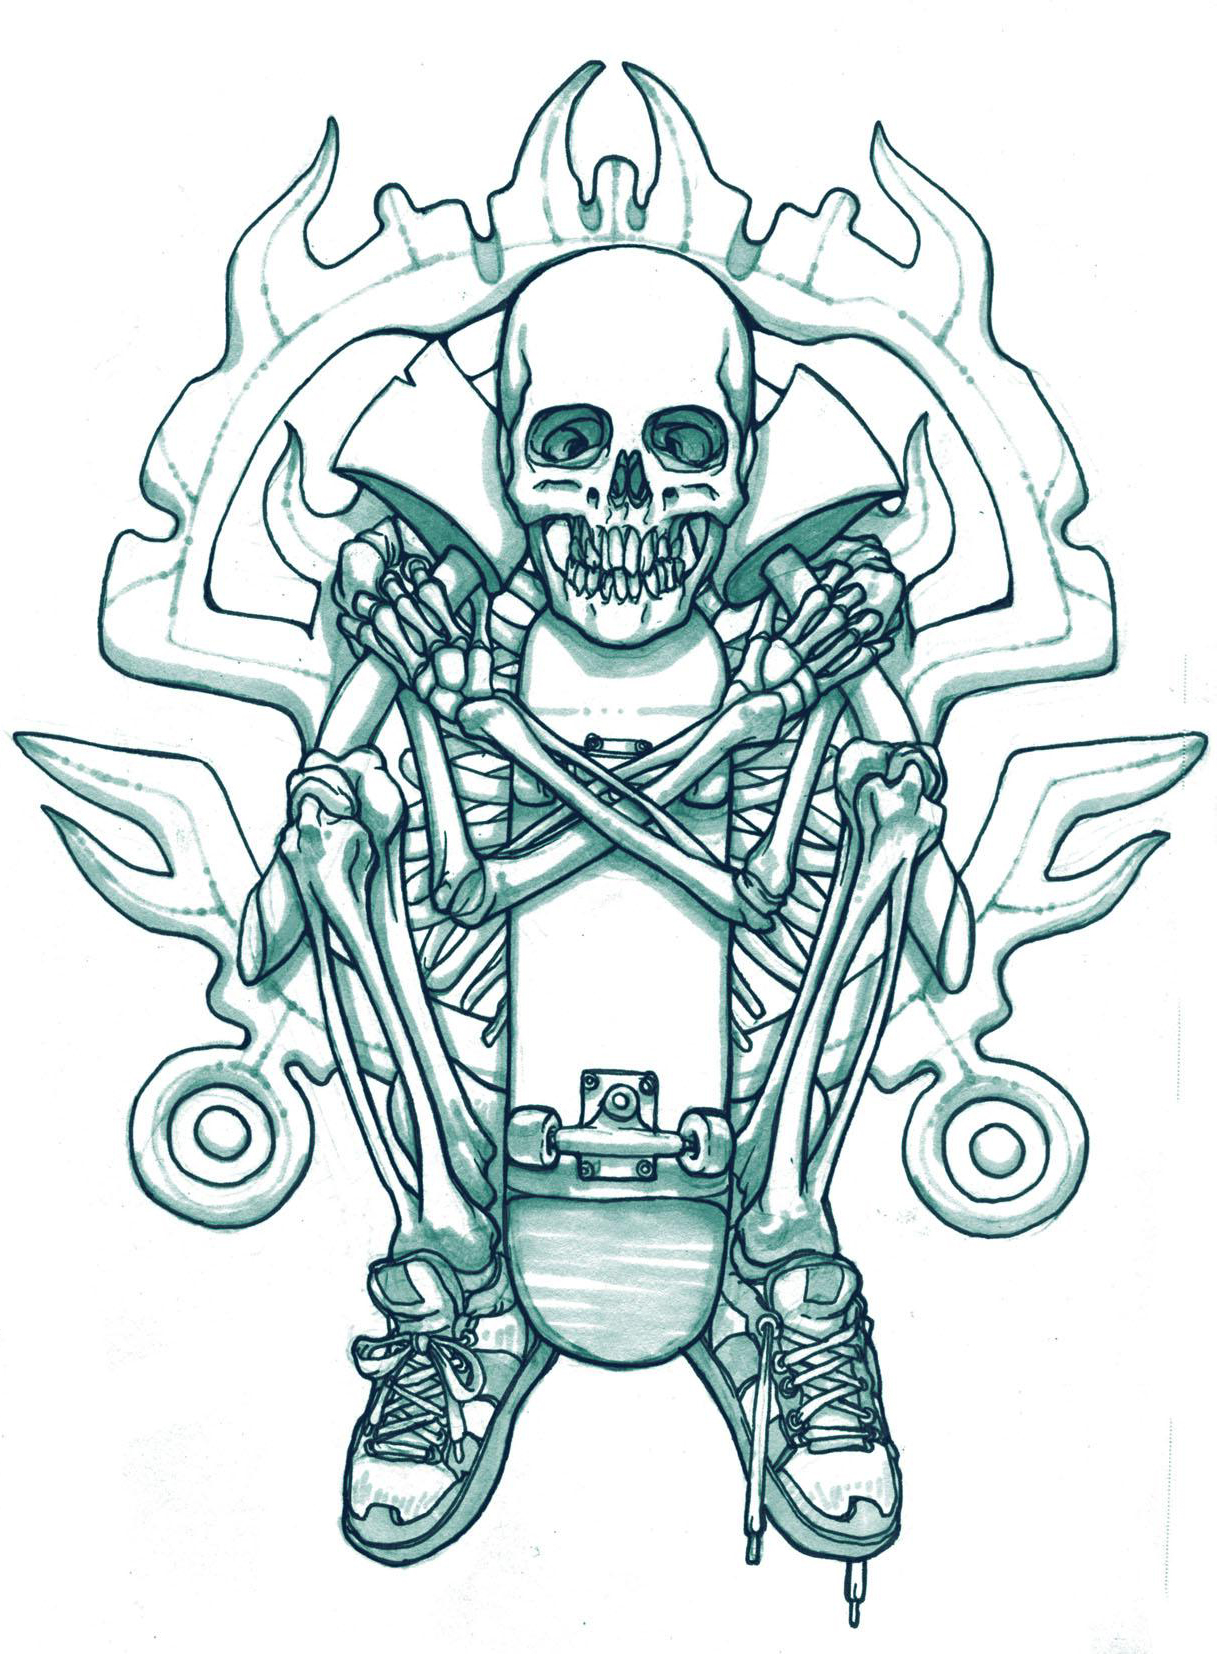 Skateboard Skeleton tattoo sketch